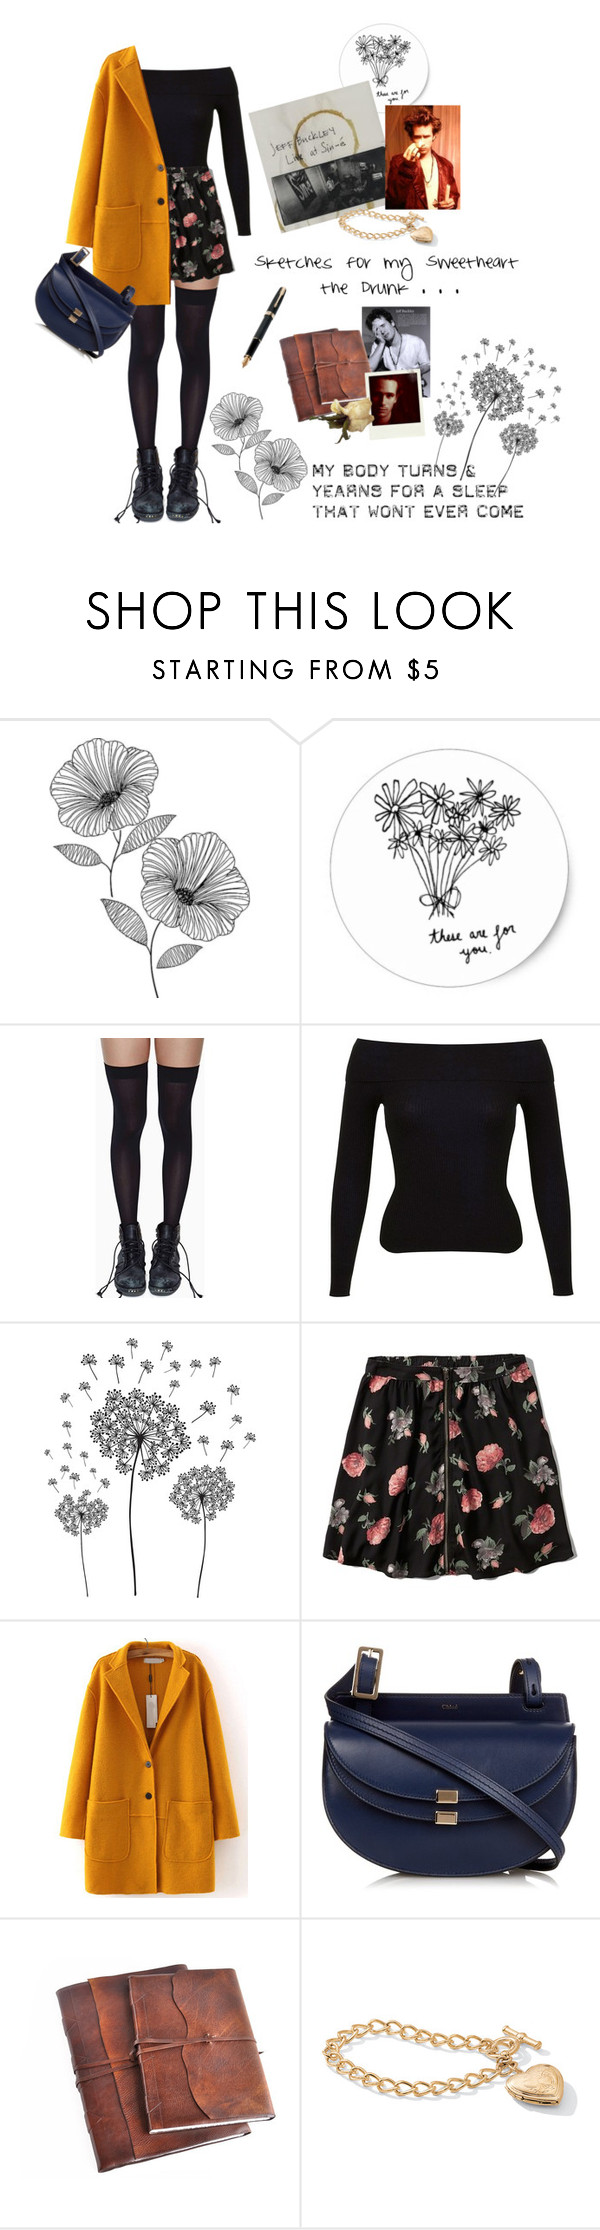 """Sketches for my Sweetheart the Drunk"" by dandelionapril ❤ liked on Polyvore featuring WallPops, Leg Avenue, Miss Selfridge, jcp, Abercrombie & Fitch, WithChic, Chloé, Fountain and Palm Beach Jewelry"